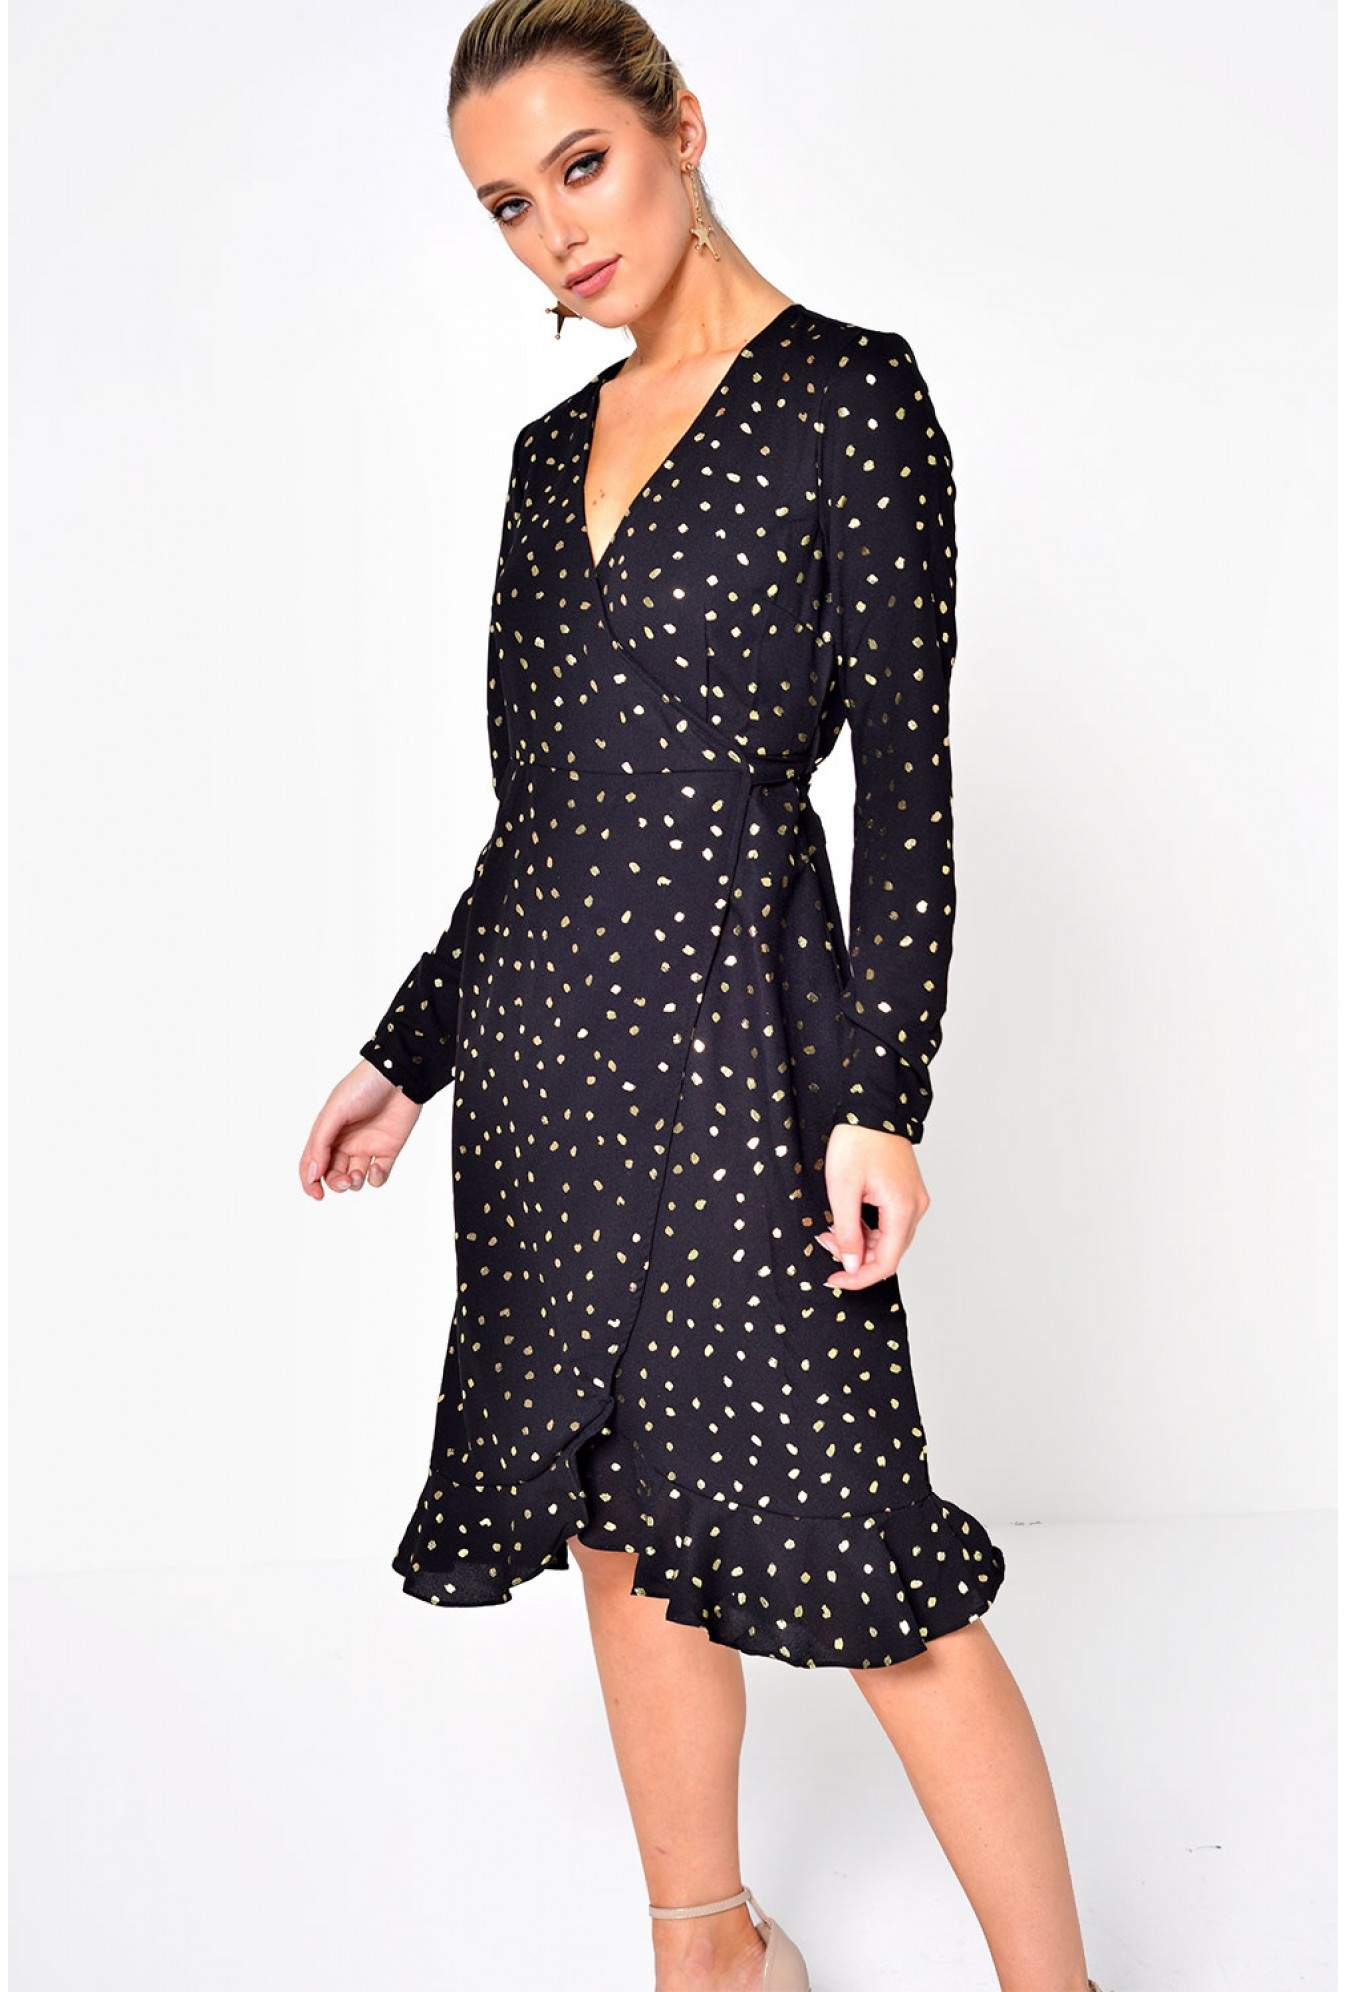 b71bb635c70c More Views. Henna Dot Foil Wrap Dress in Black. Video Gallery. Vero Moda